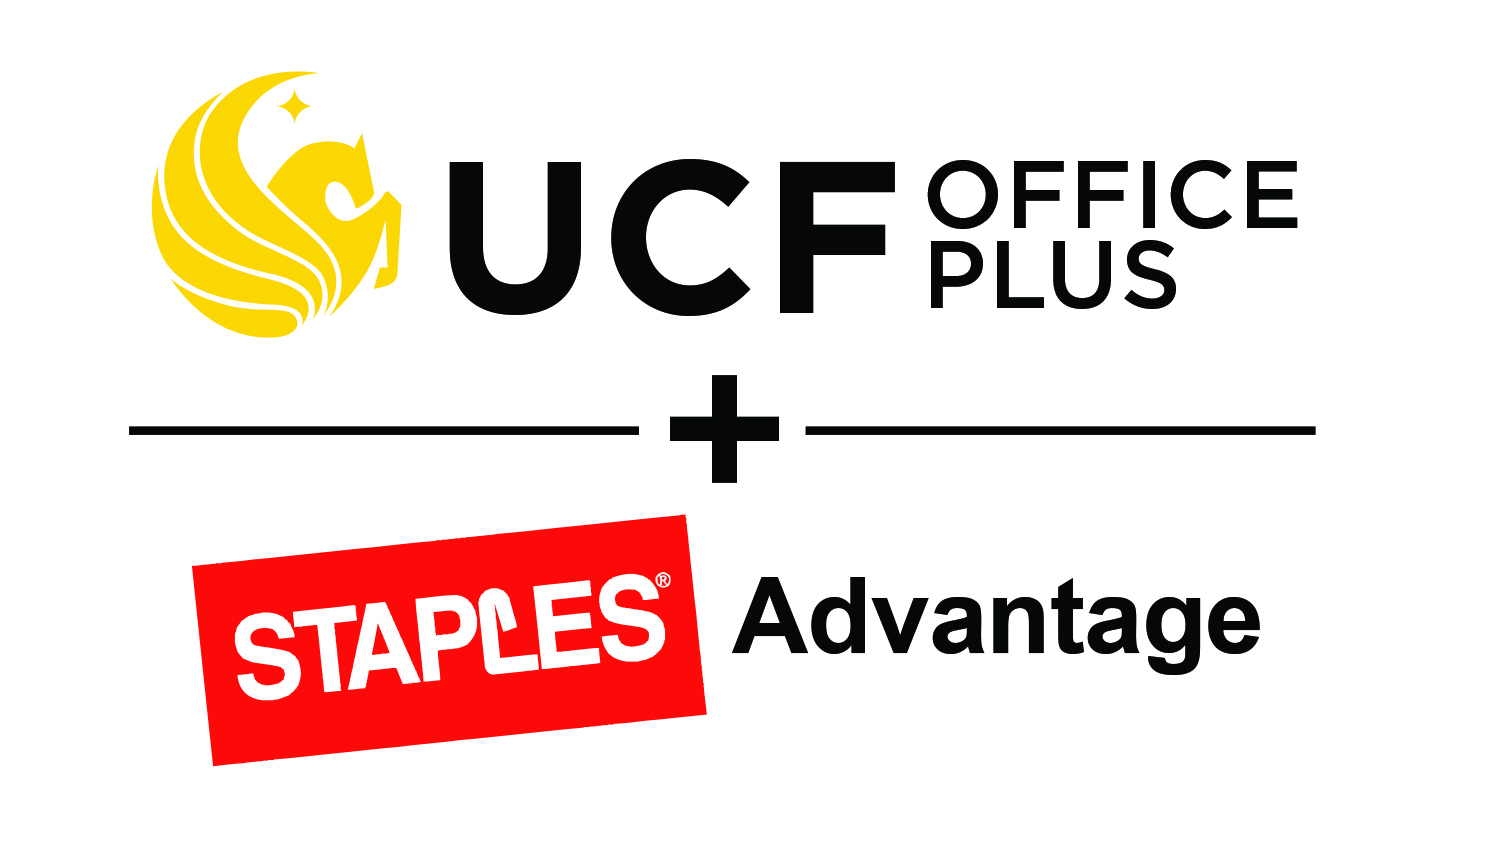 UCF Office Plus